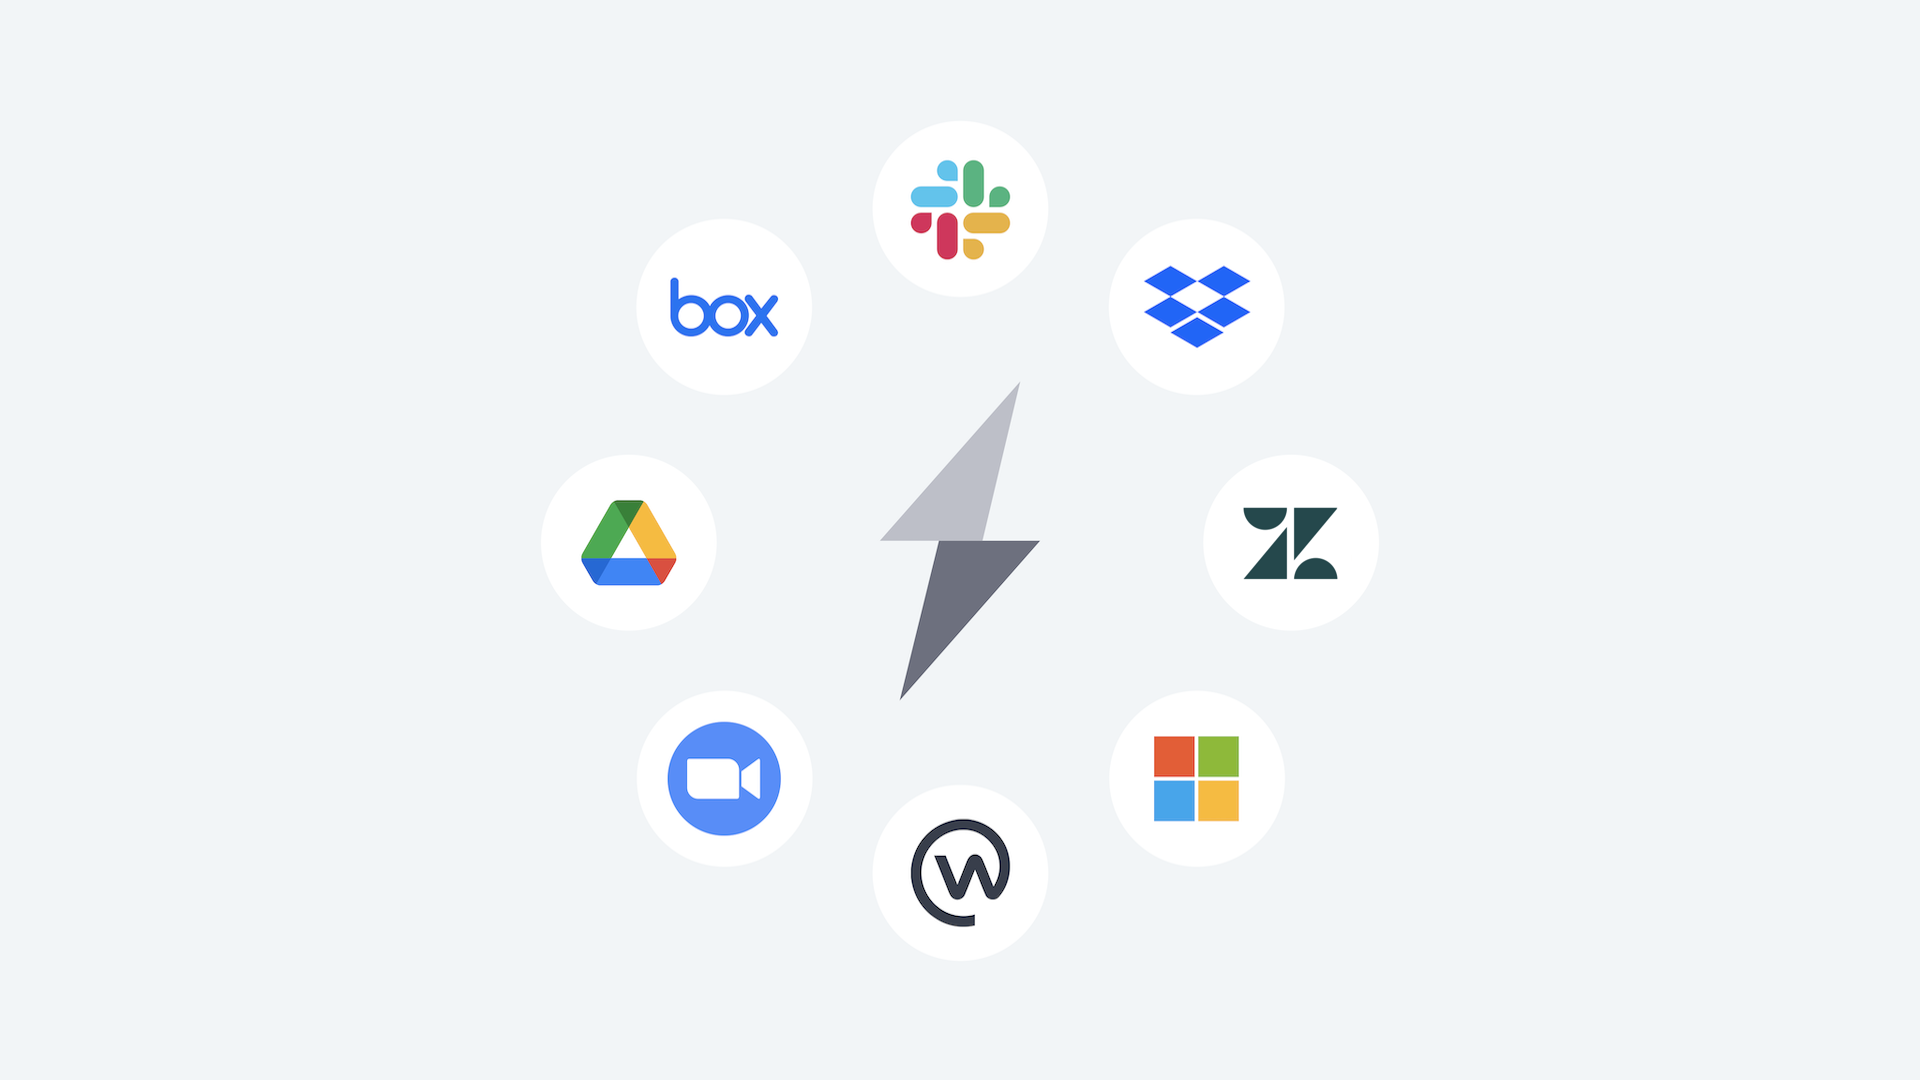 Multiple cloud-based applications around a lightning bolt